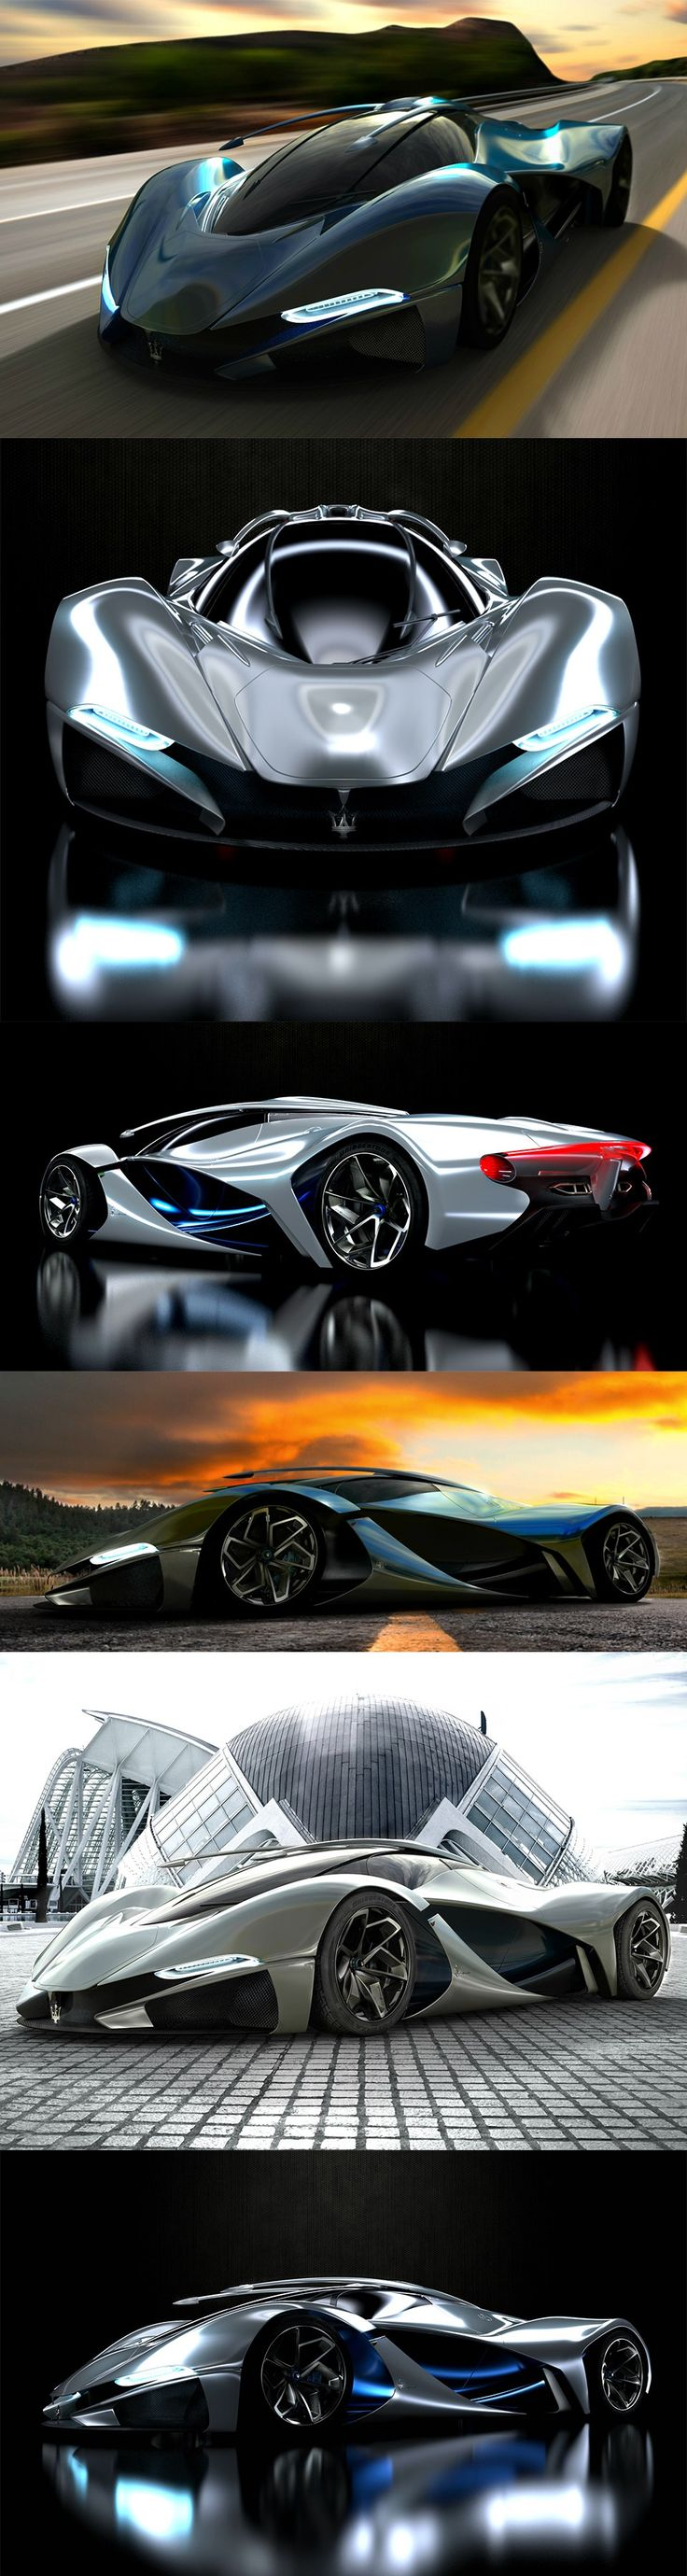 LaMaserati - Concept Car by Mark Hostler                                                                                                                                                      More